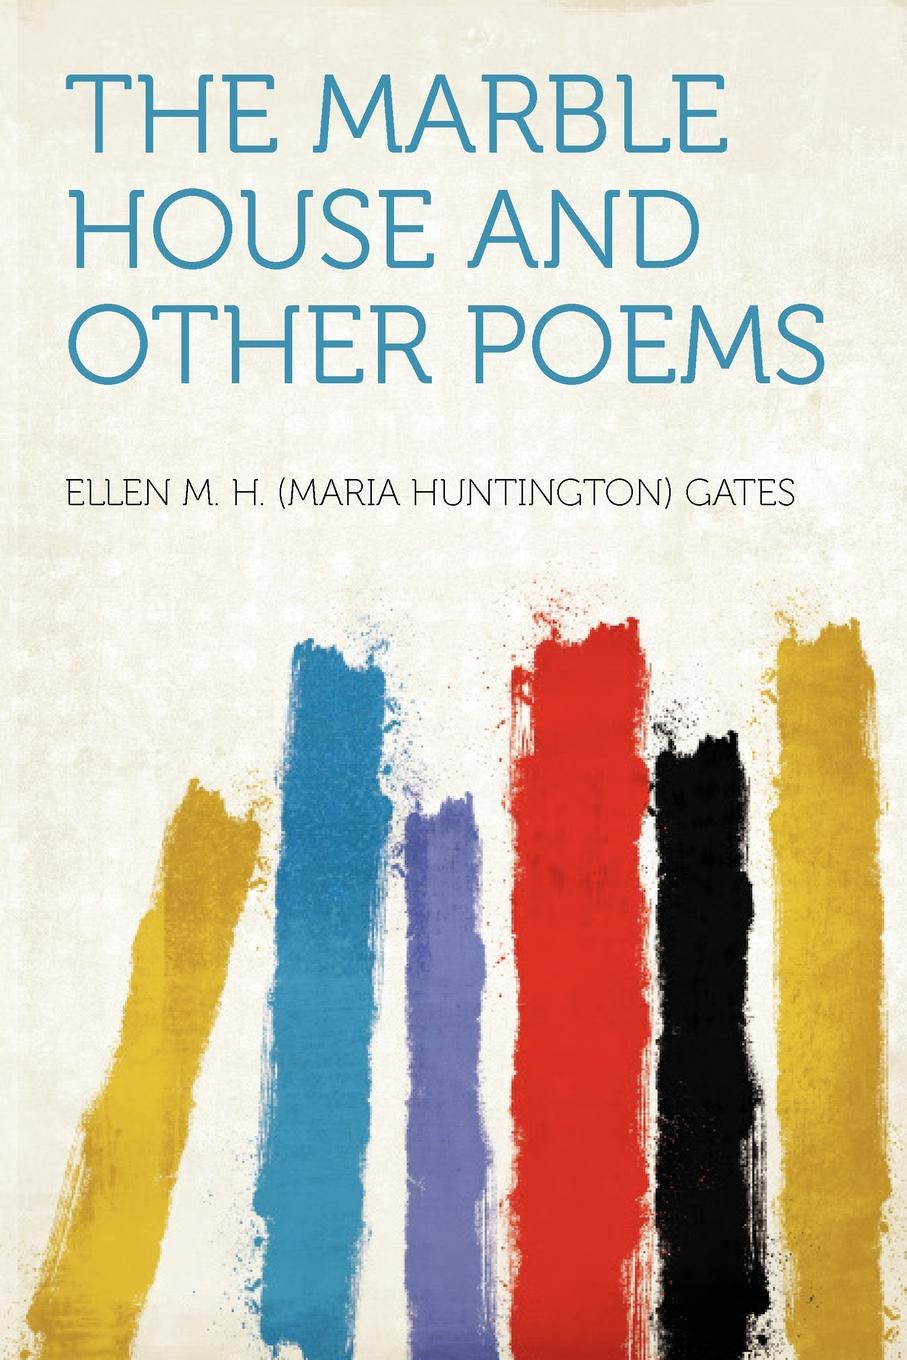 The Marble House and Other Poems